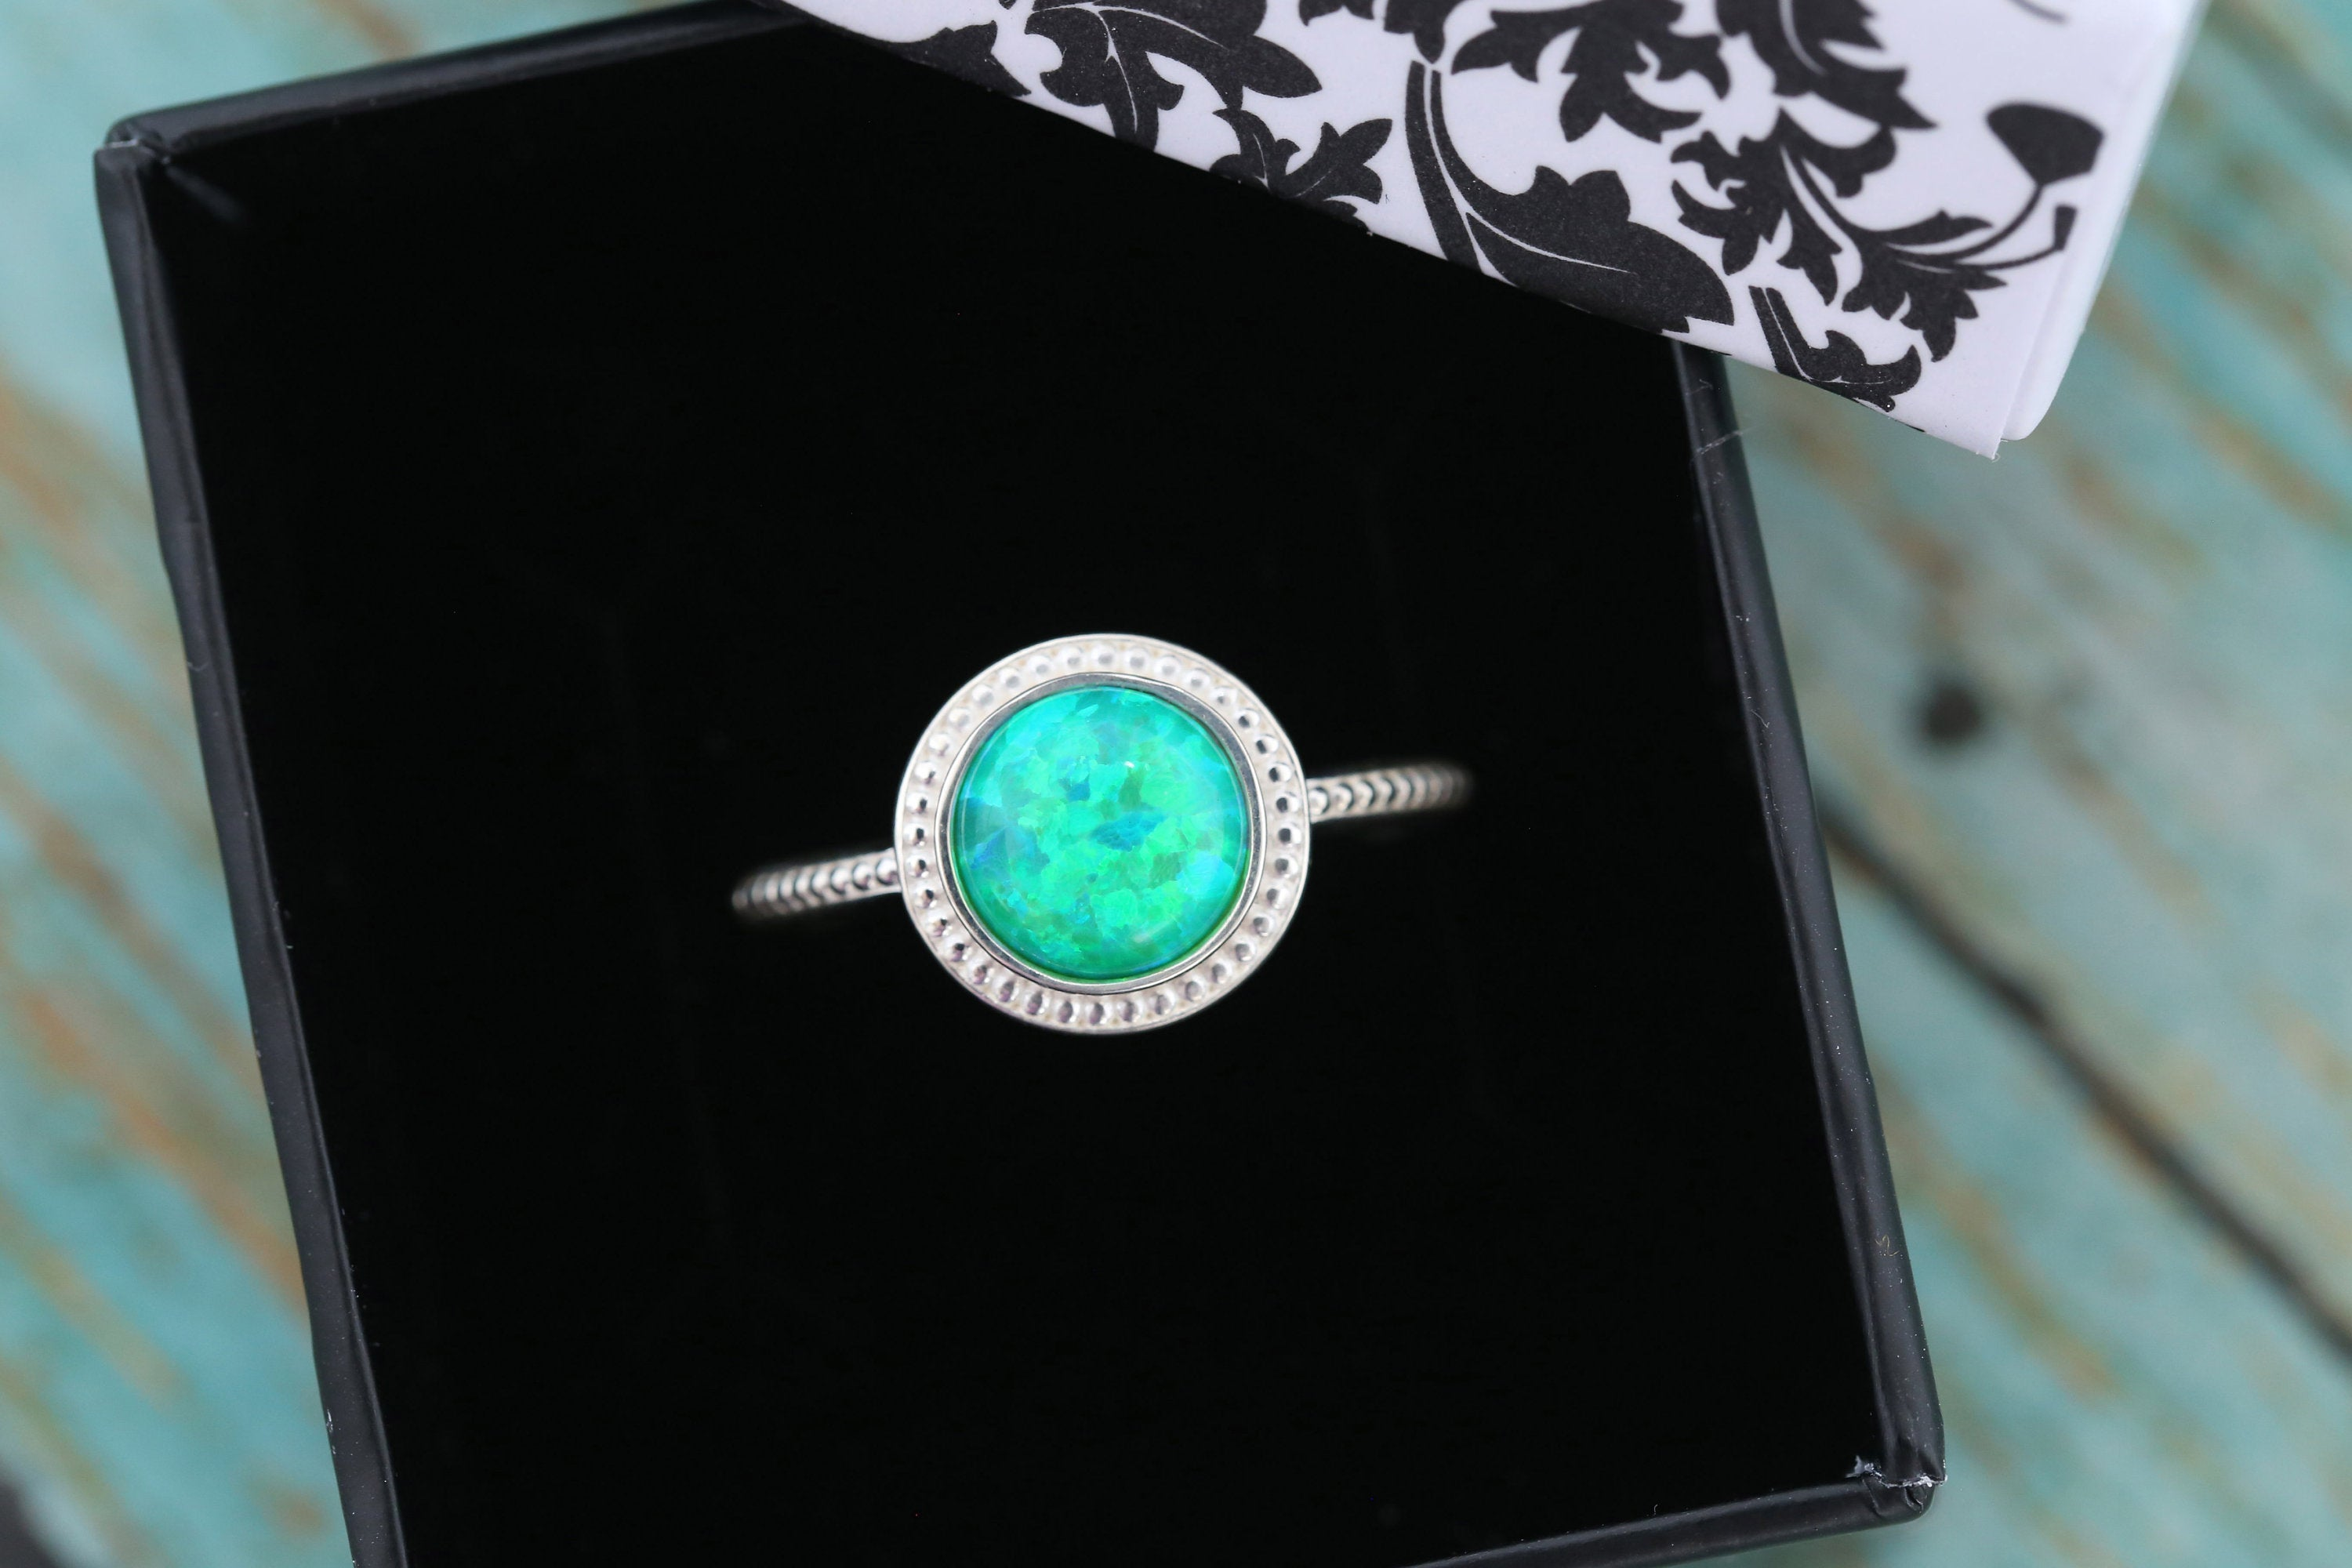 8mm Opal Cremation Ring - Sterling Silver Beaded Ring - Cremation Jewelry - Ash Ring - Ash Jewelry - Urn Ring - Pet Loss - 8mm3